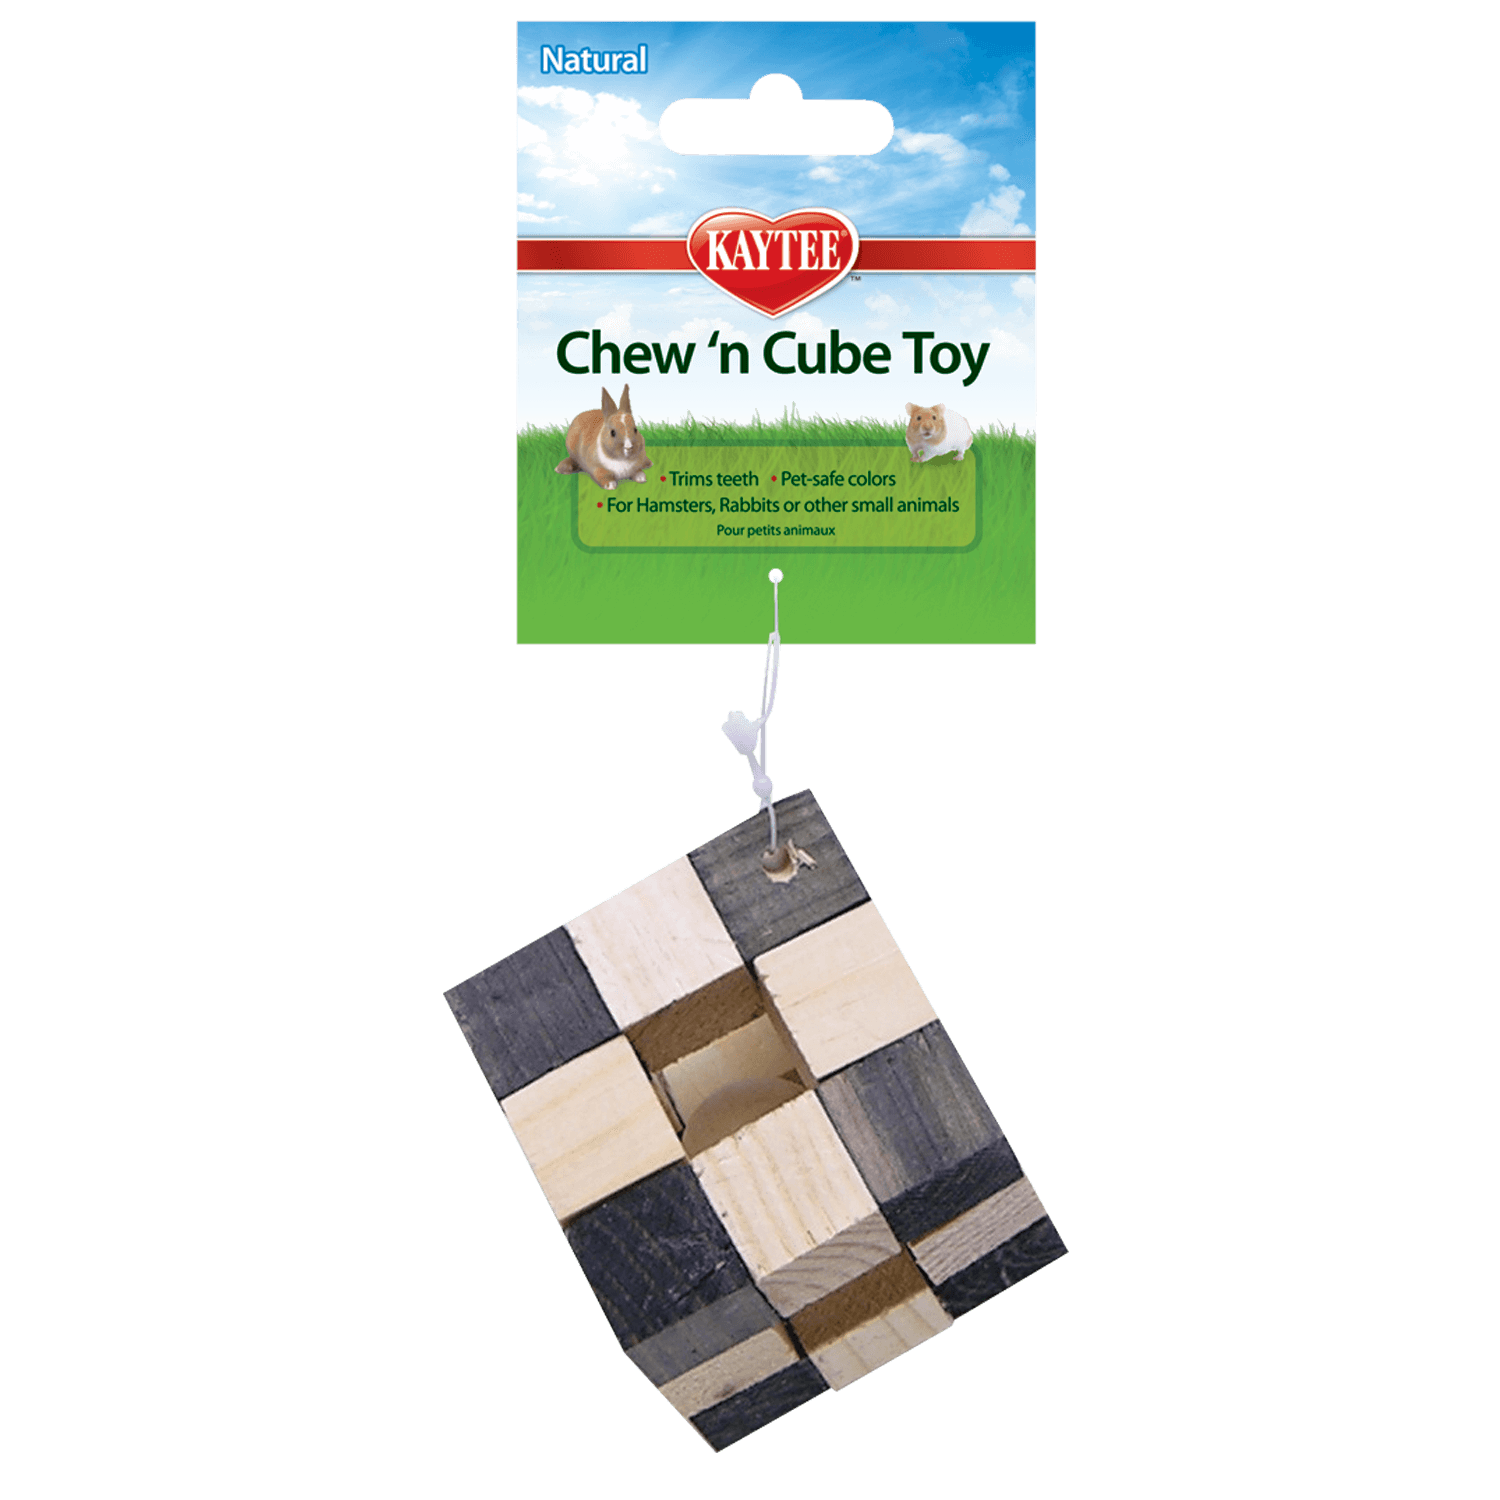 Kaytee Chew-N-Cube Natural Small Animal Toy